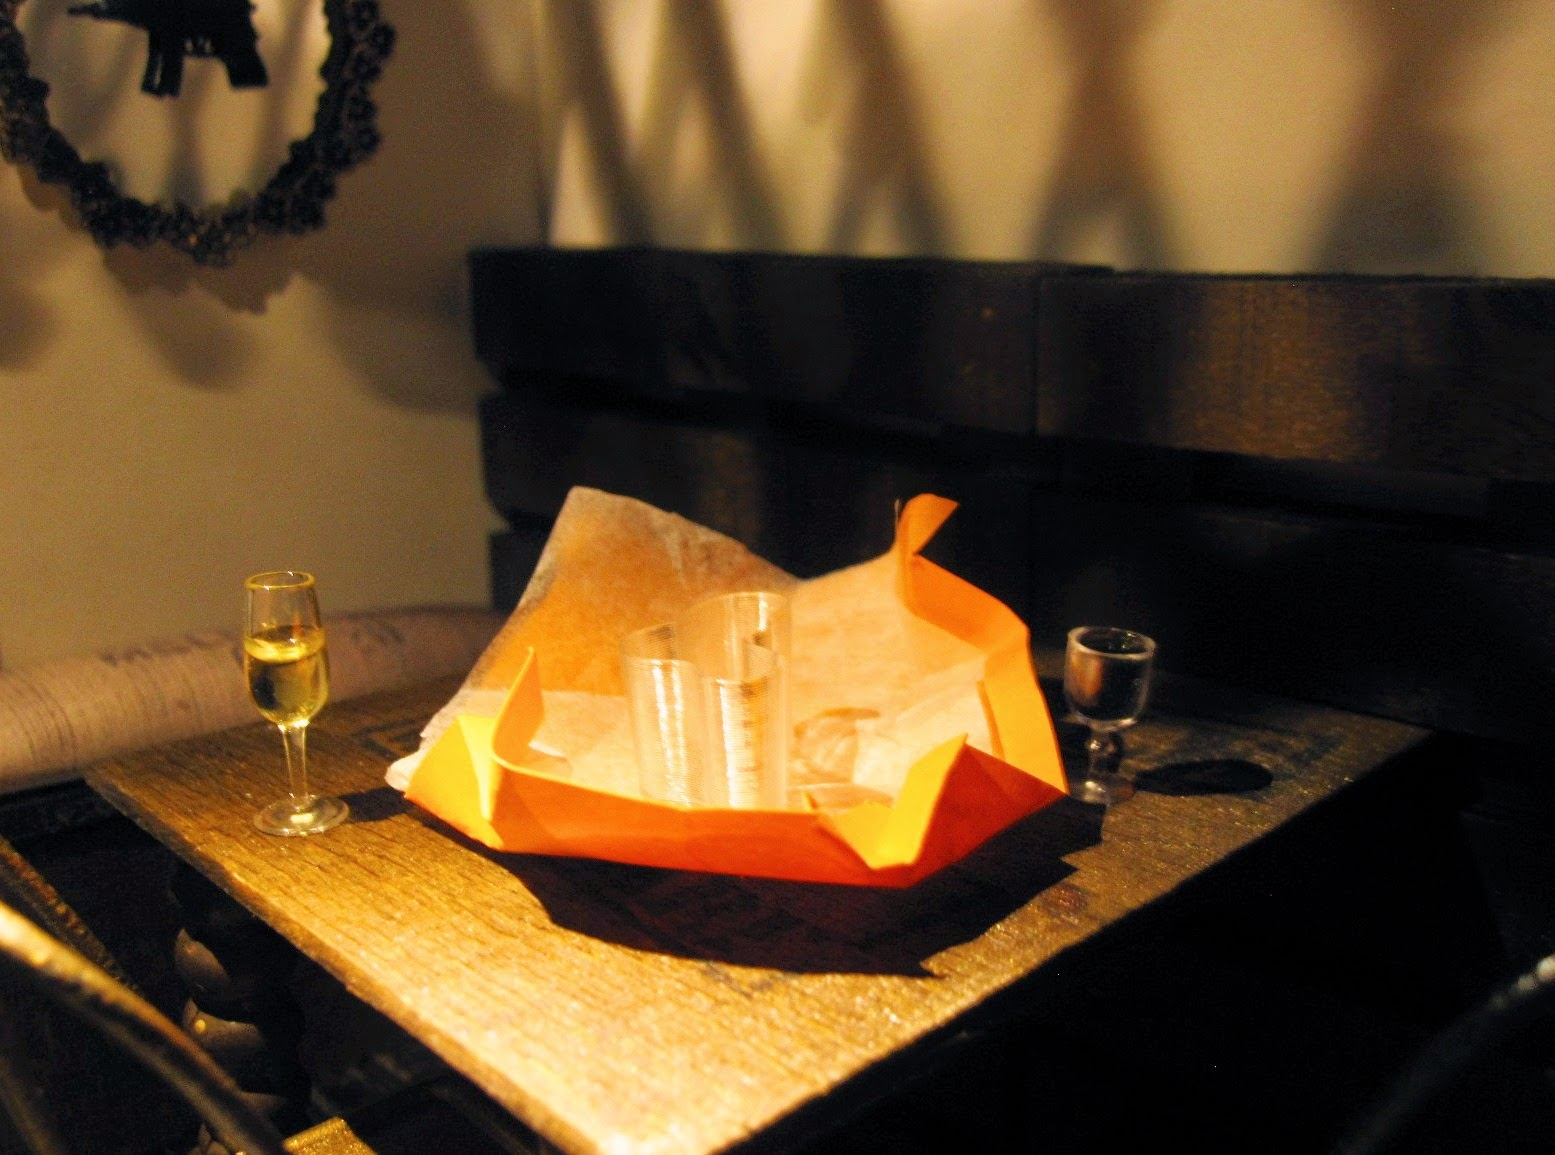 Interior of a modern dolls' house miniature cafe at night, with two glasses of wine and an unwrapped gift on the table.